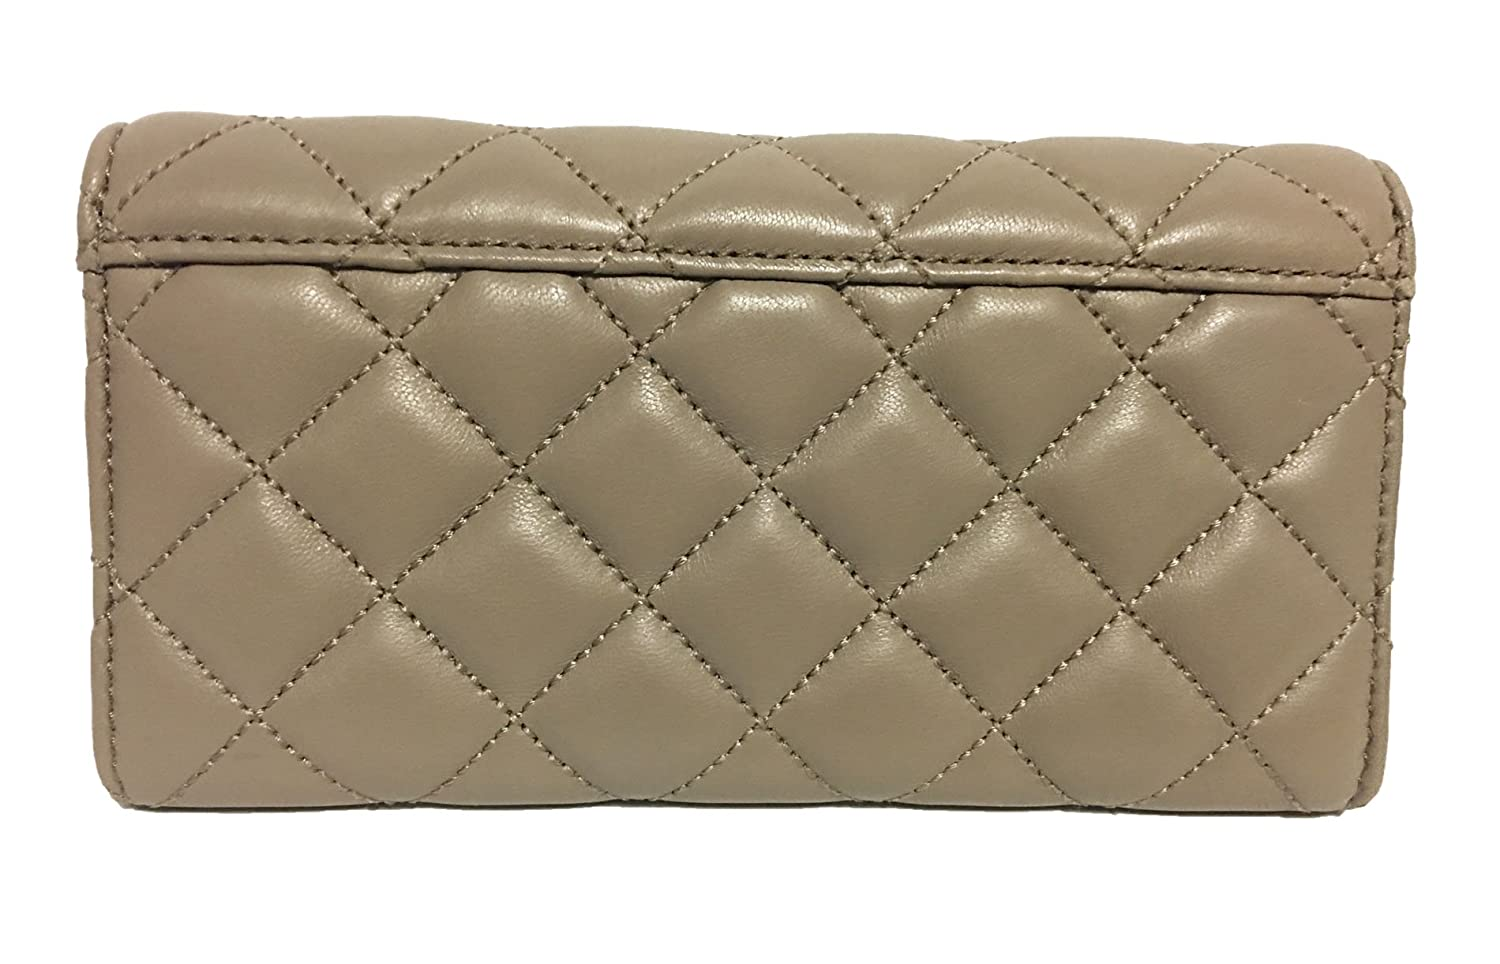 da3074a64332cc Amazon.com: MICHAEL Michael Kors Astrid Soft Quilted Leather Carry All  Wallet Dark Taupe/Gold: Shoes